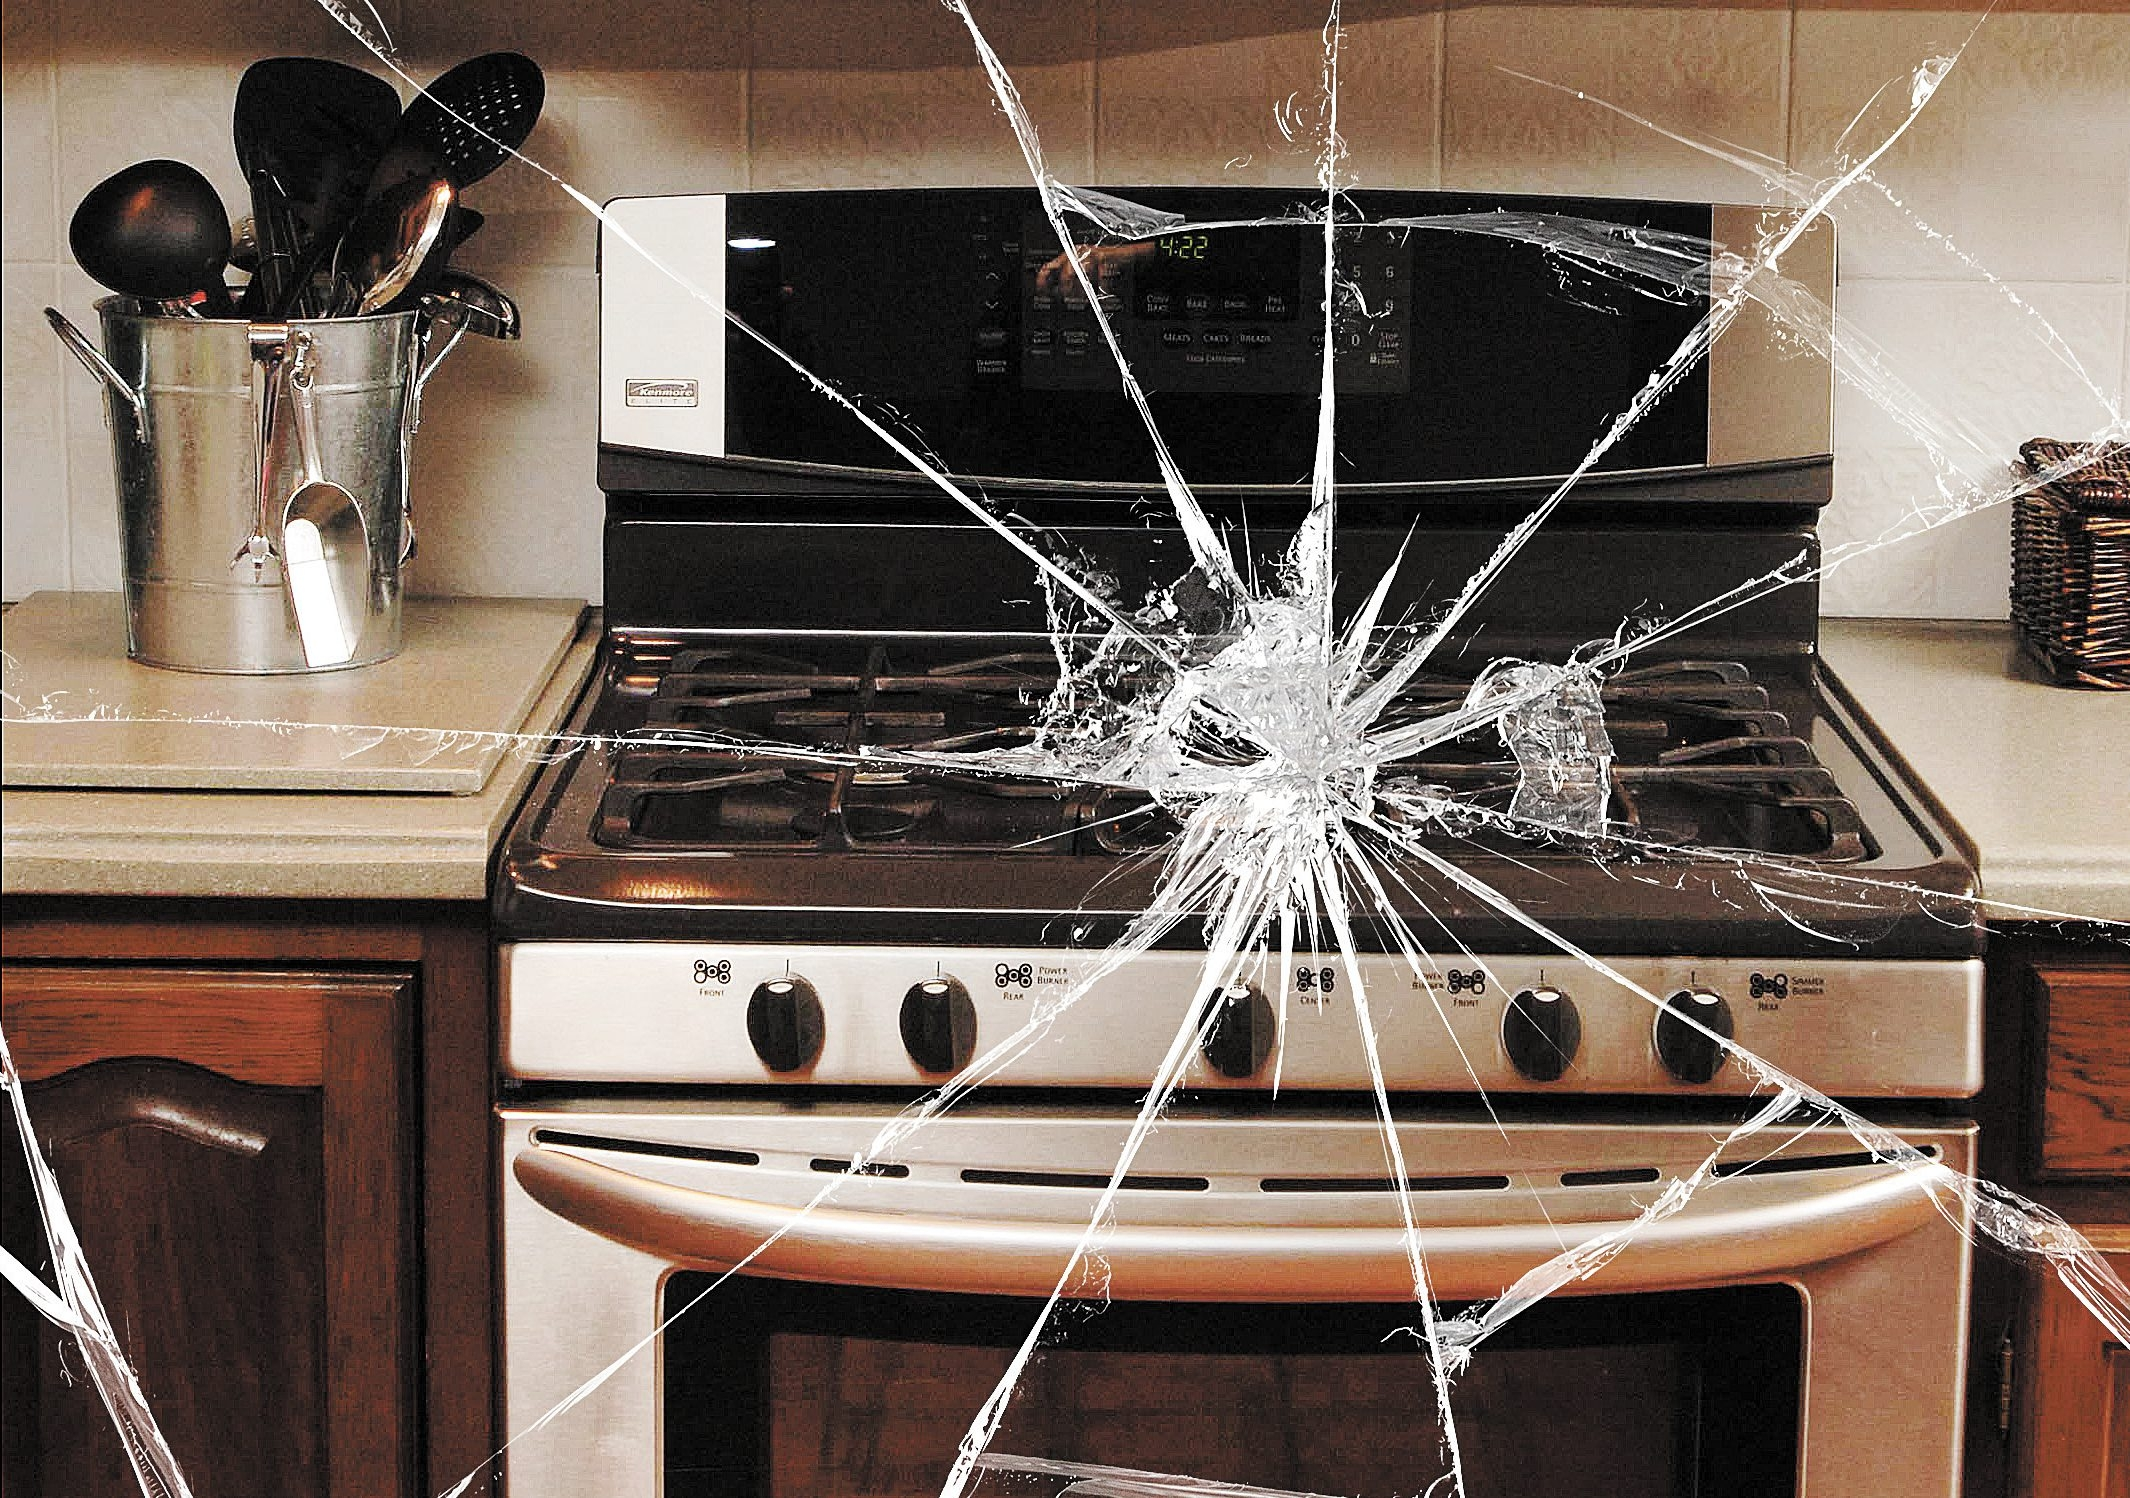 Kitchen Appliance Repairs How To Avoid Costly Kitchen Appliance Repairs The Buffalo News